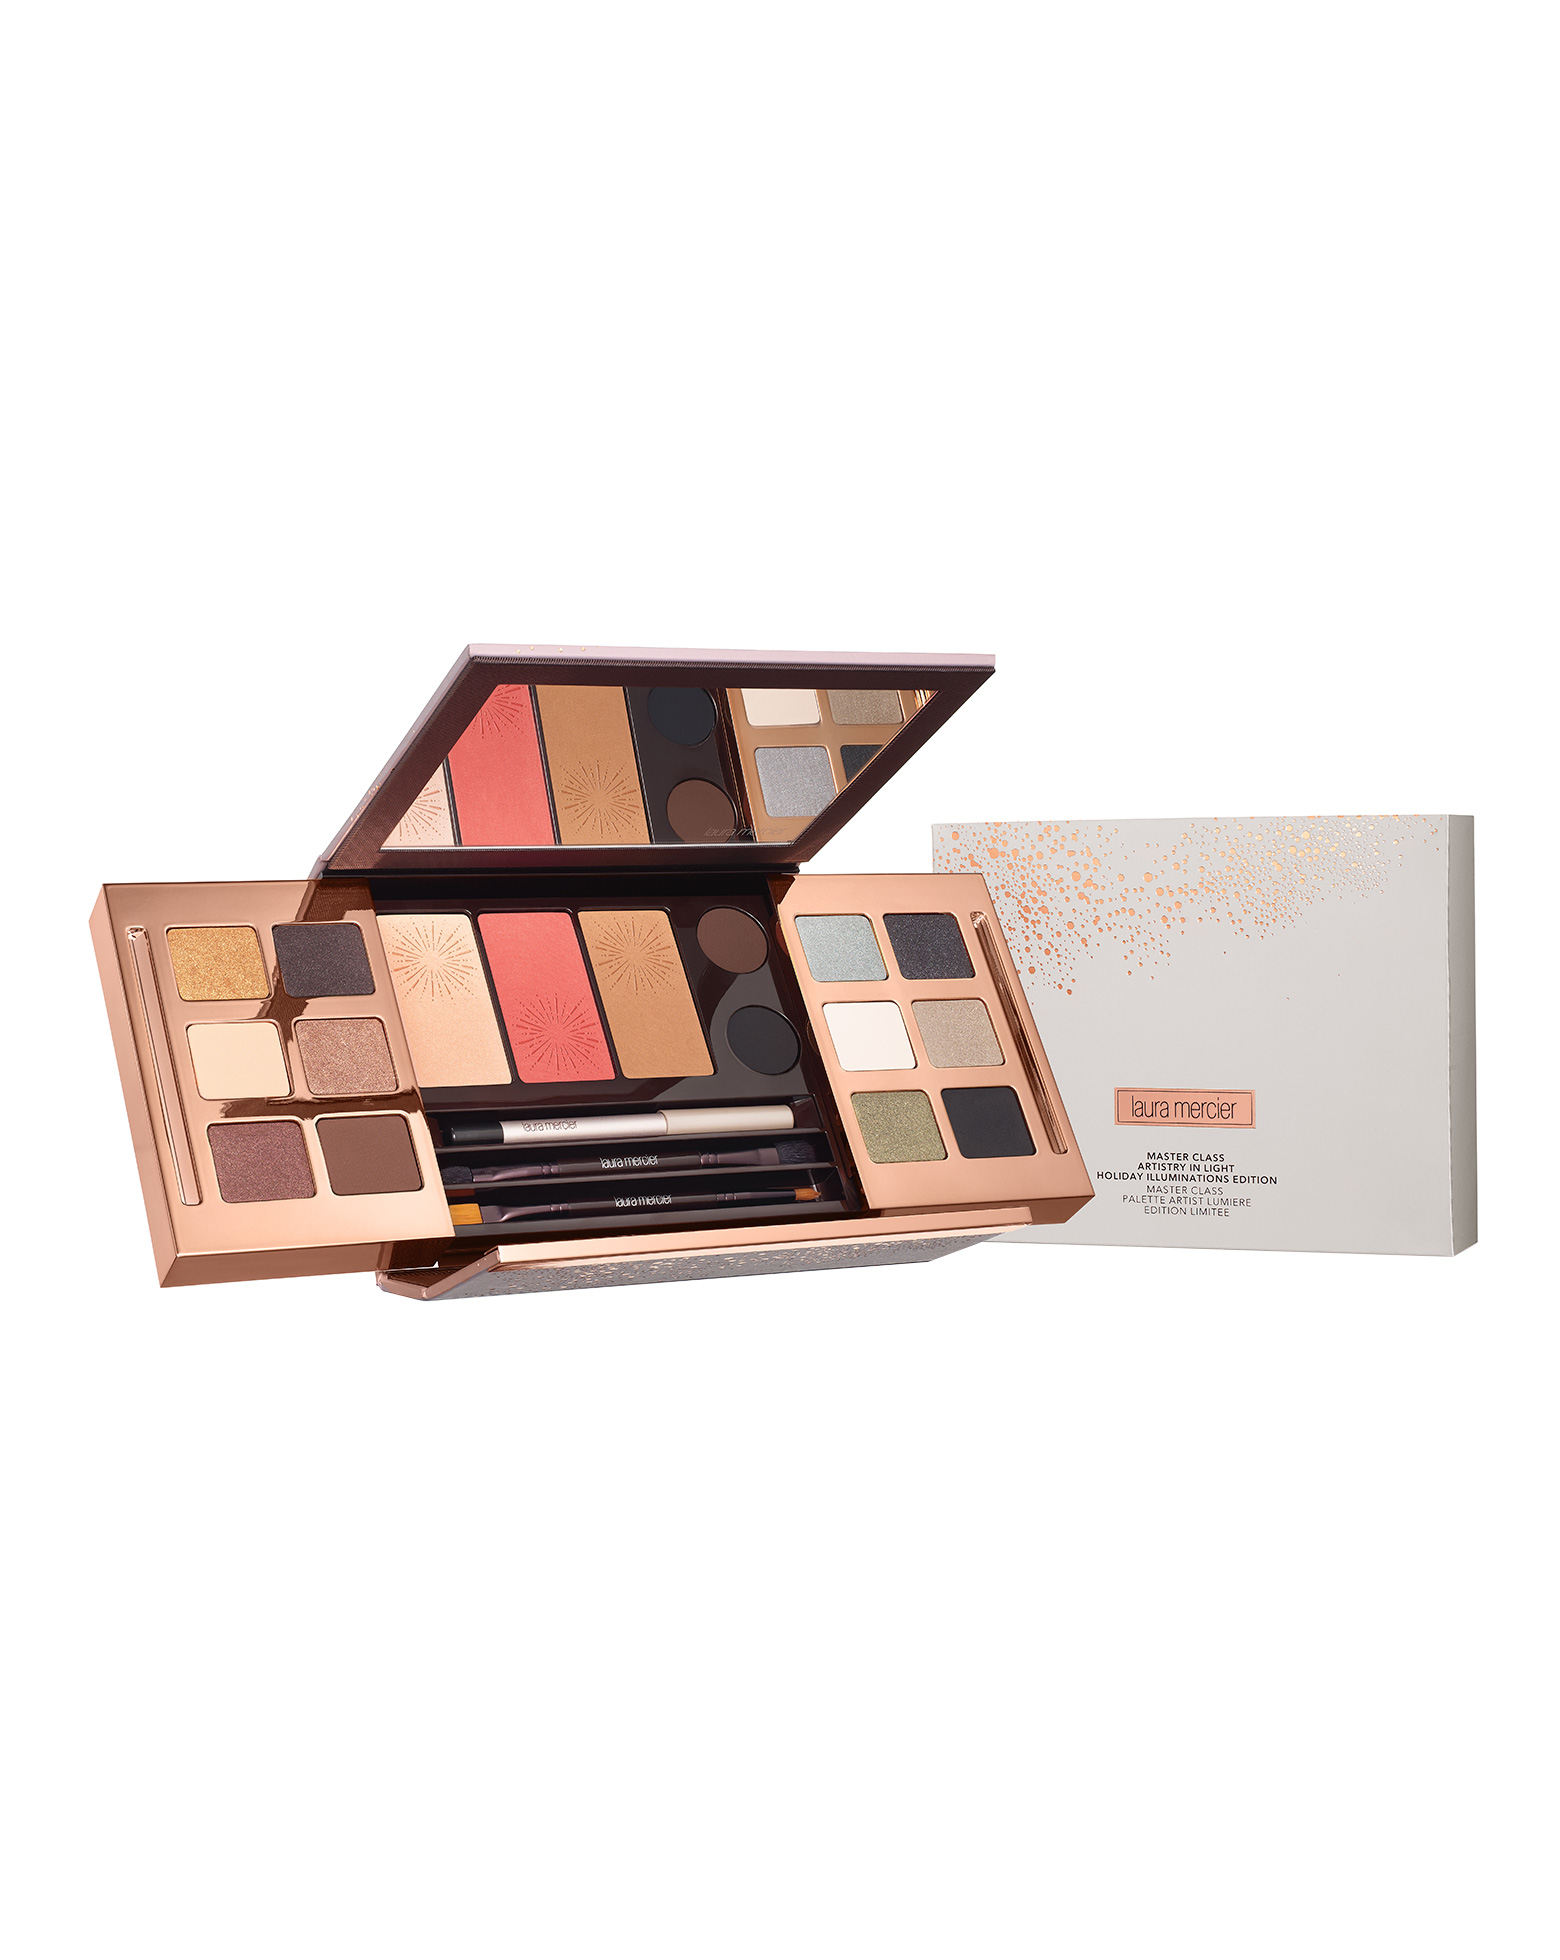 Laura Mercier Light Holiday Illuminations Master Class Artistry Palette - No Color